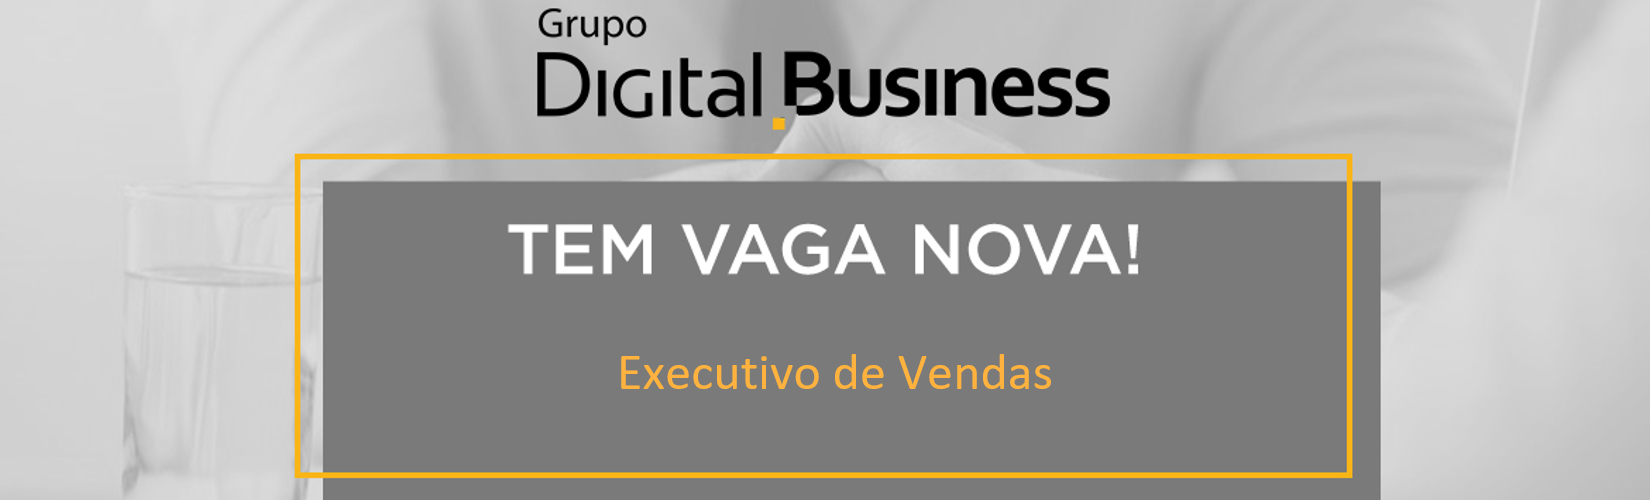 [DIGITAL BUSINESS] - Executivo de Vendas TI